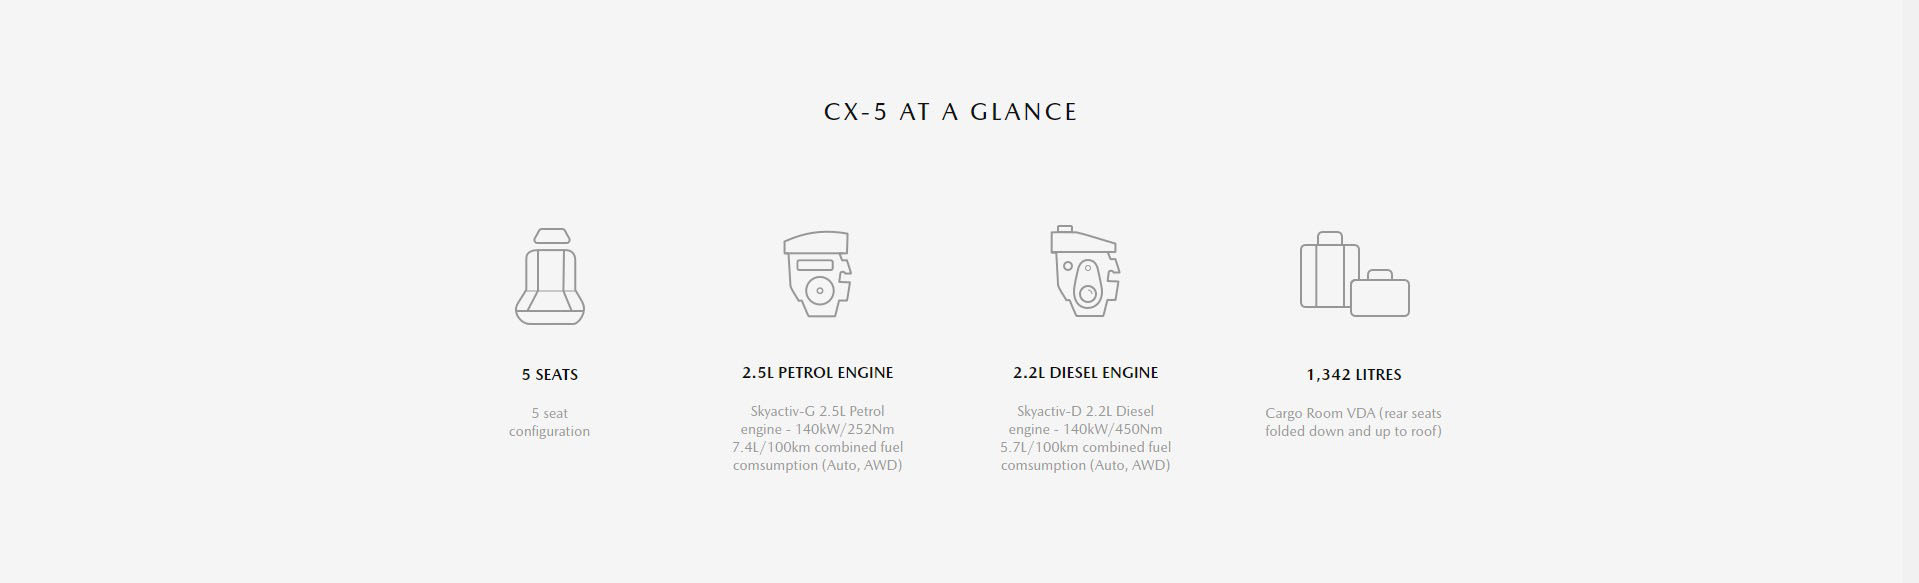 CX-5-AT-A-GLANCE